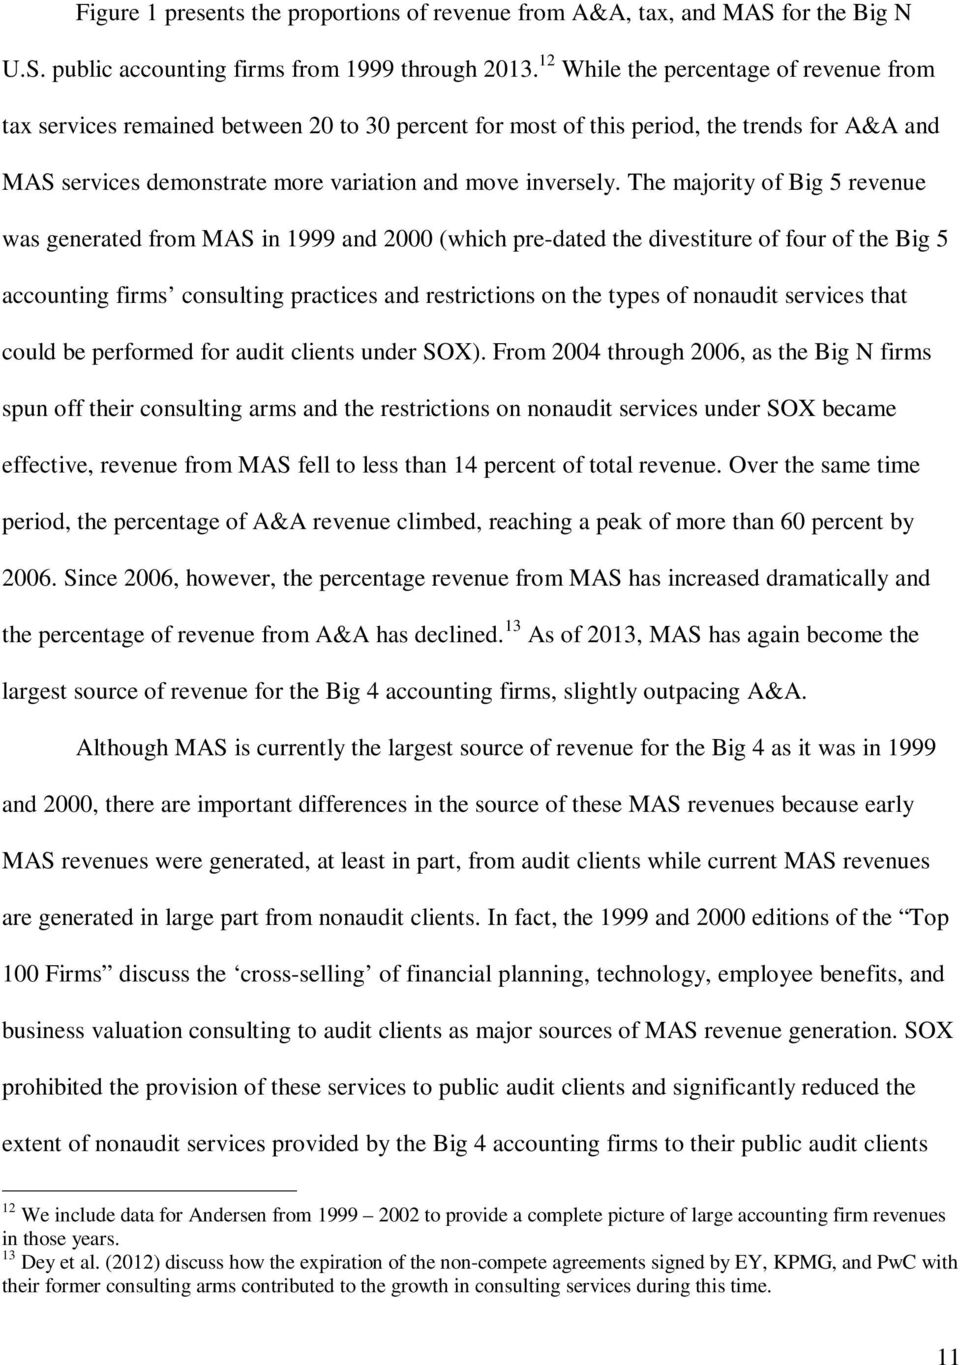 The majority of Big 5 revenue was generated from MAS in 1999 and 2000 (which pre-dated the divestiture of four of the Big 5 accounting firms consulting practices and restrictions on the types of